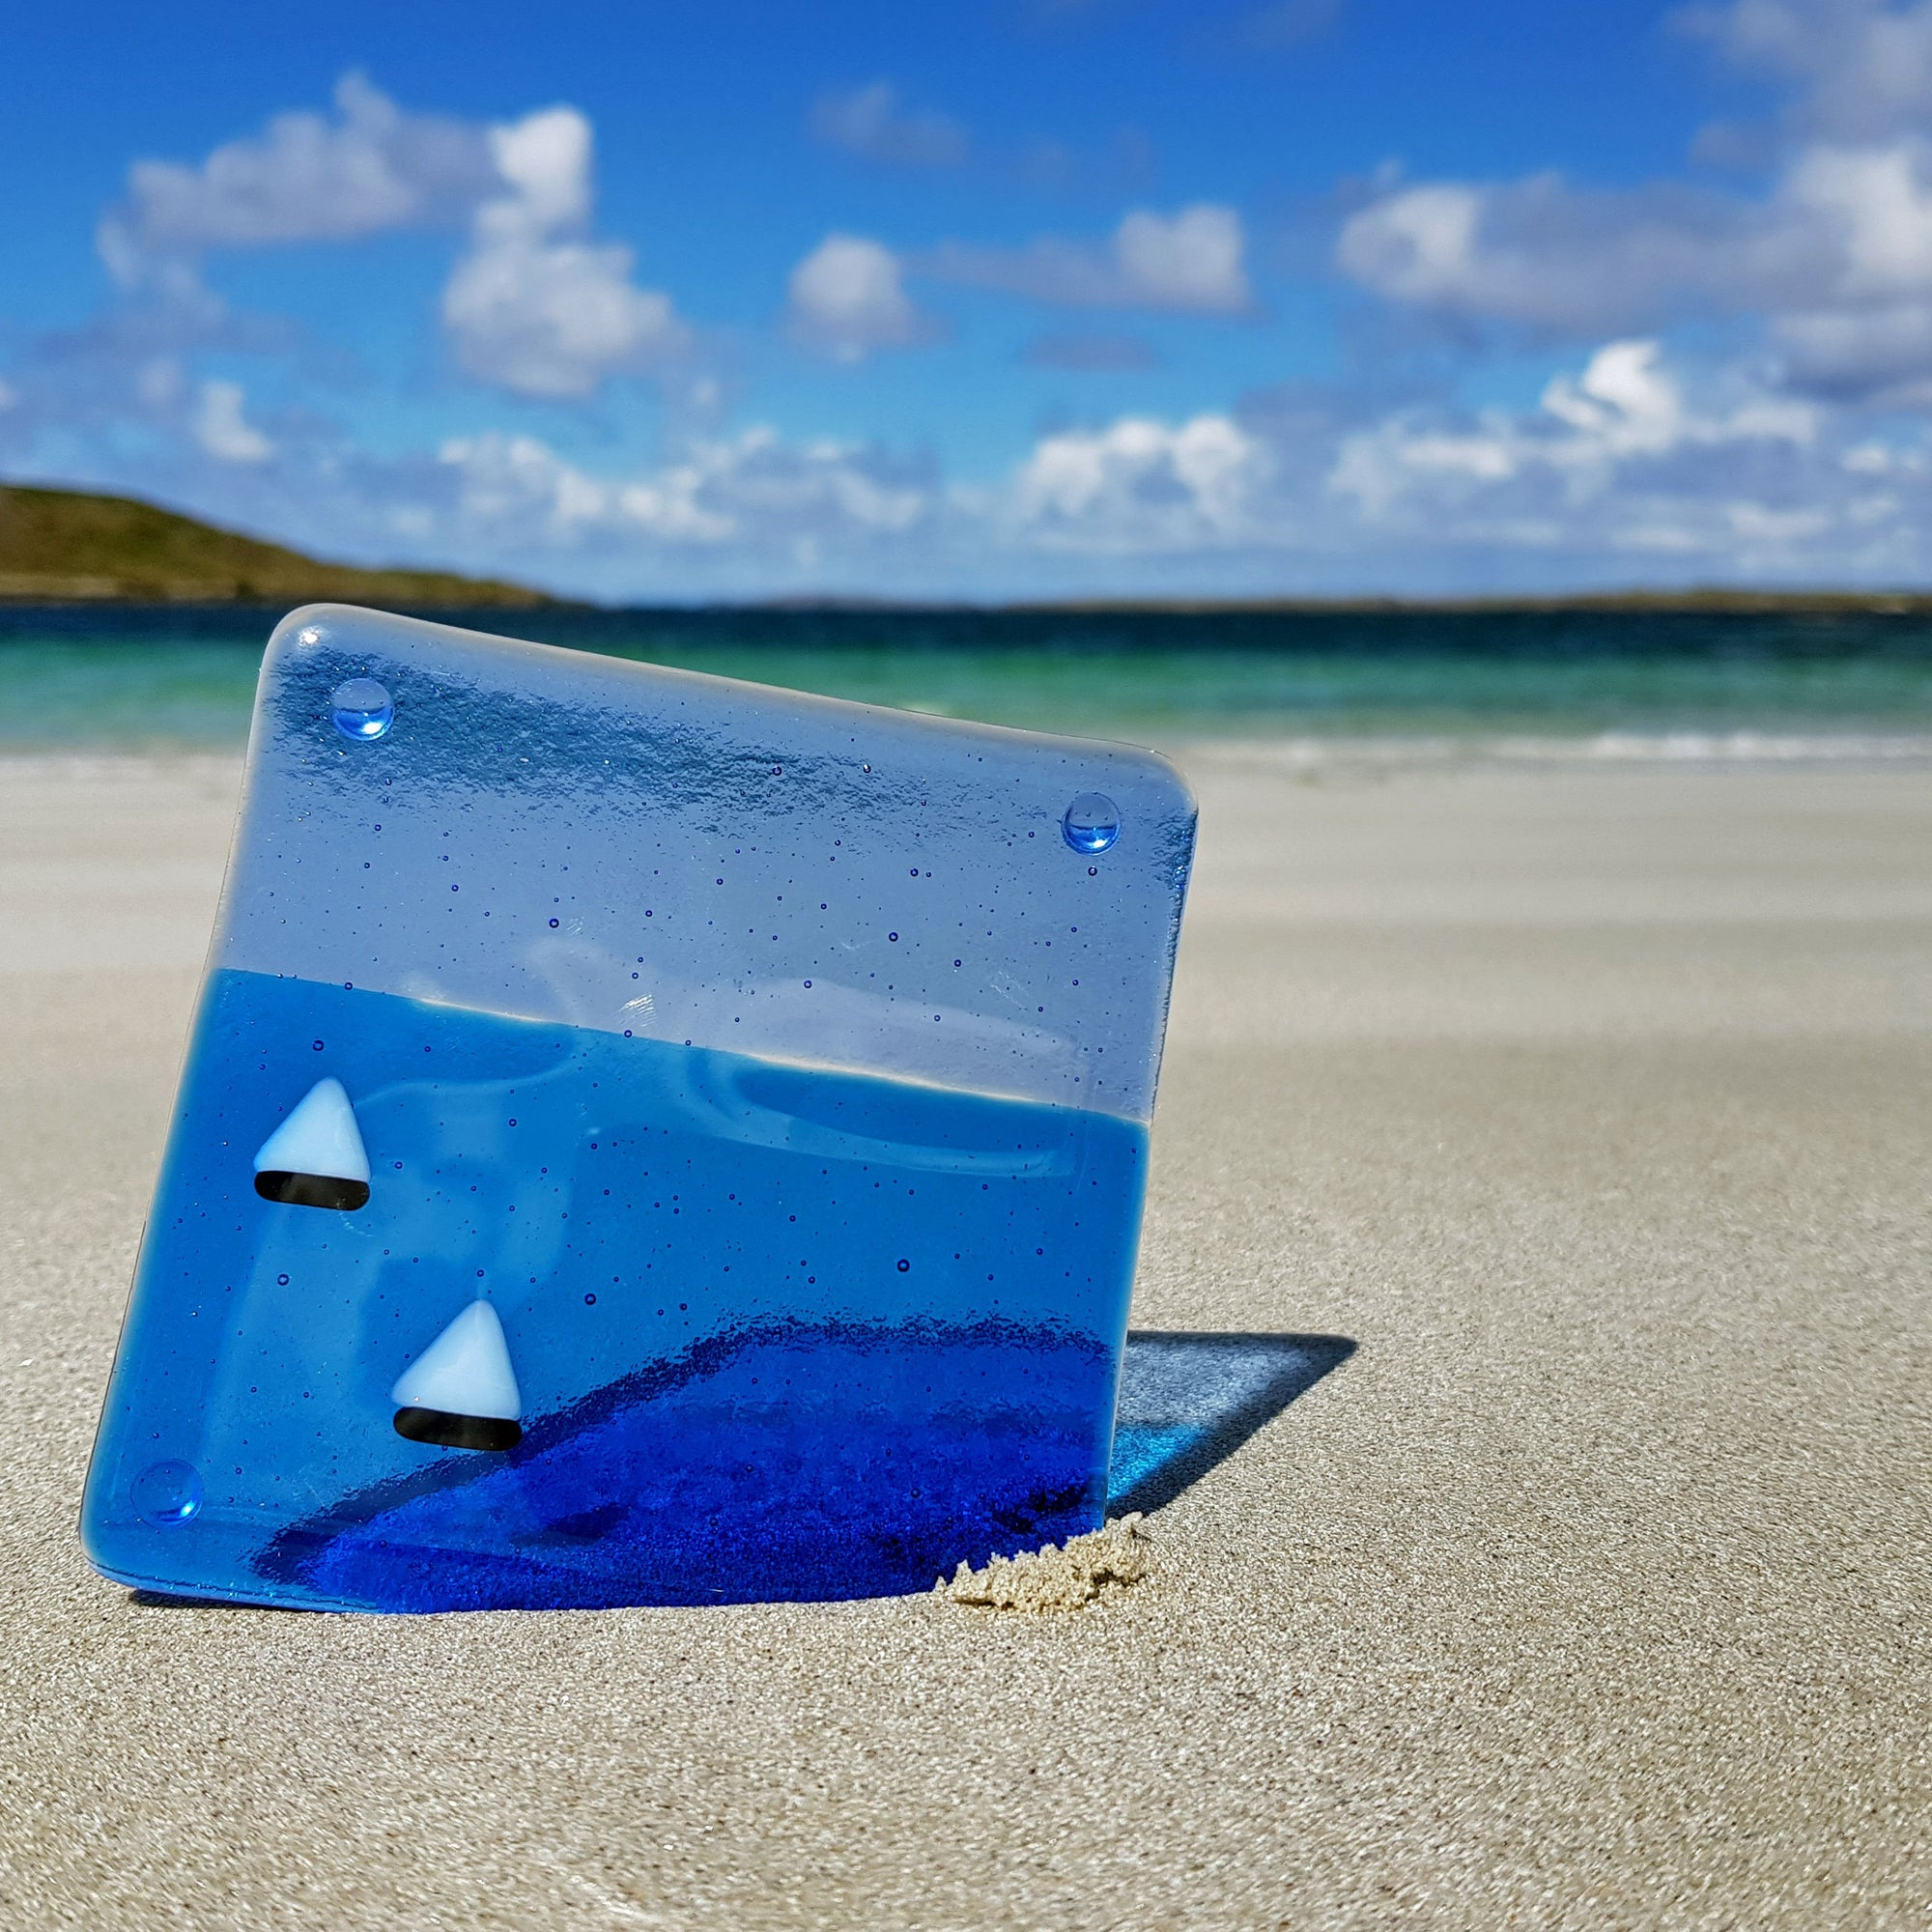 Glass coaster featuring two little boats with white sails on the ocean. Great small gift idea from Connemara Blue